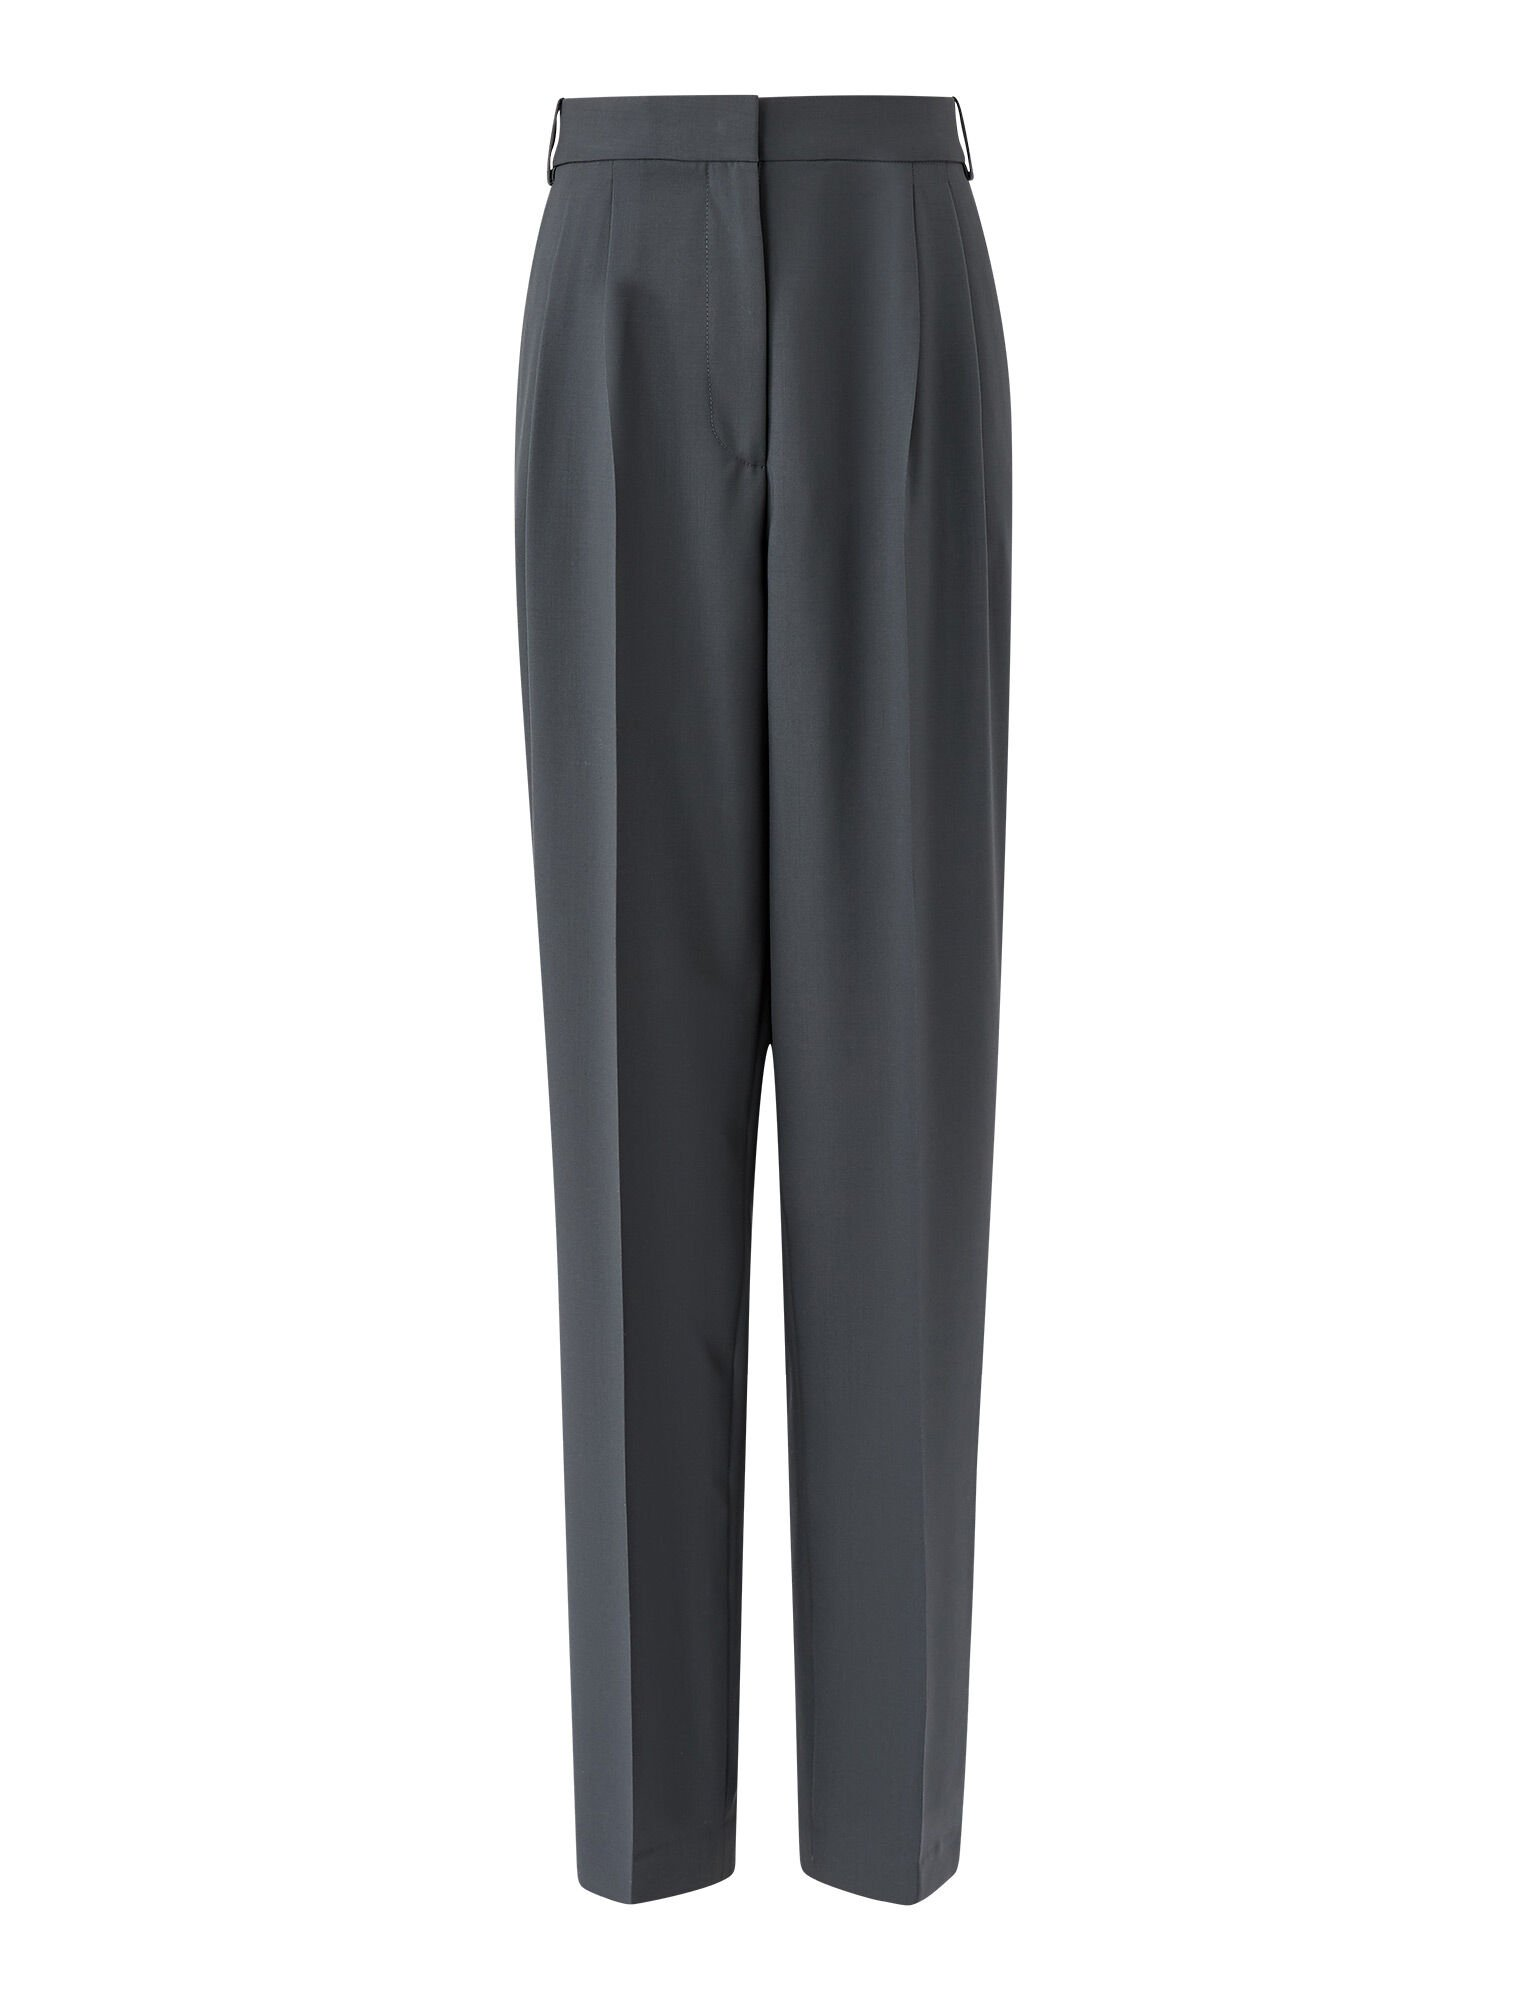 Joseph, Fender Toile de Laine Trousers, in SLATE GREY